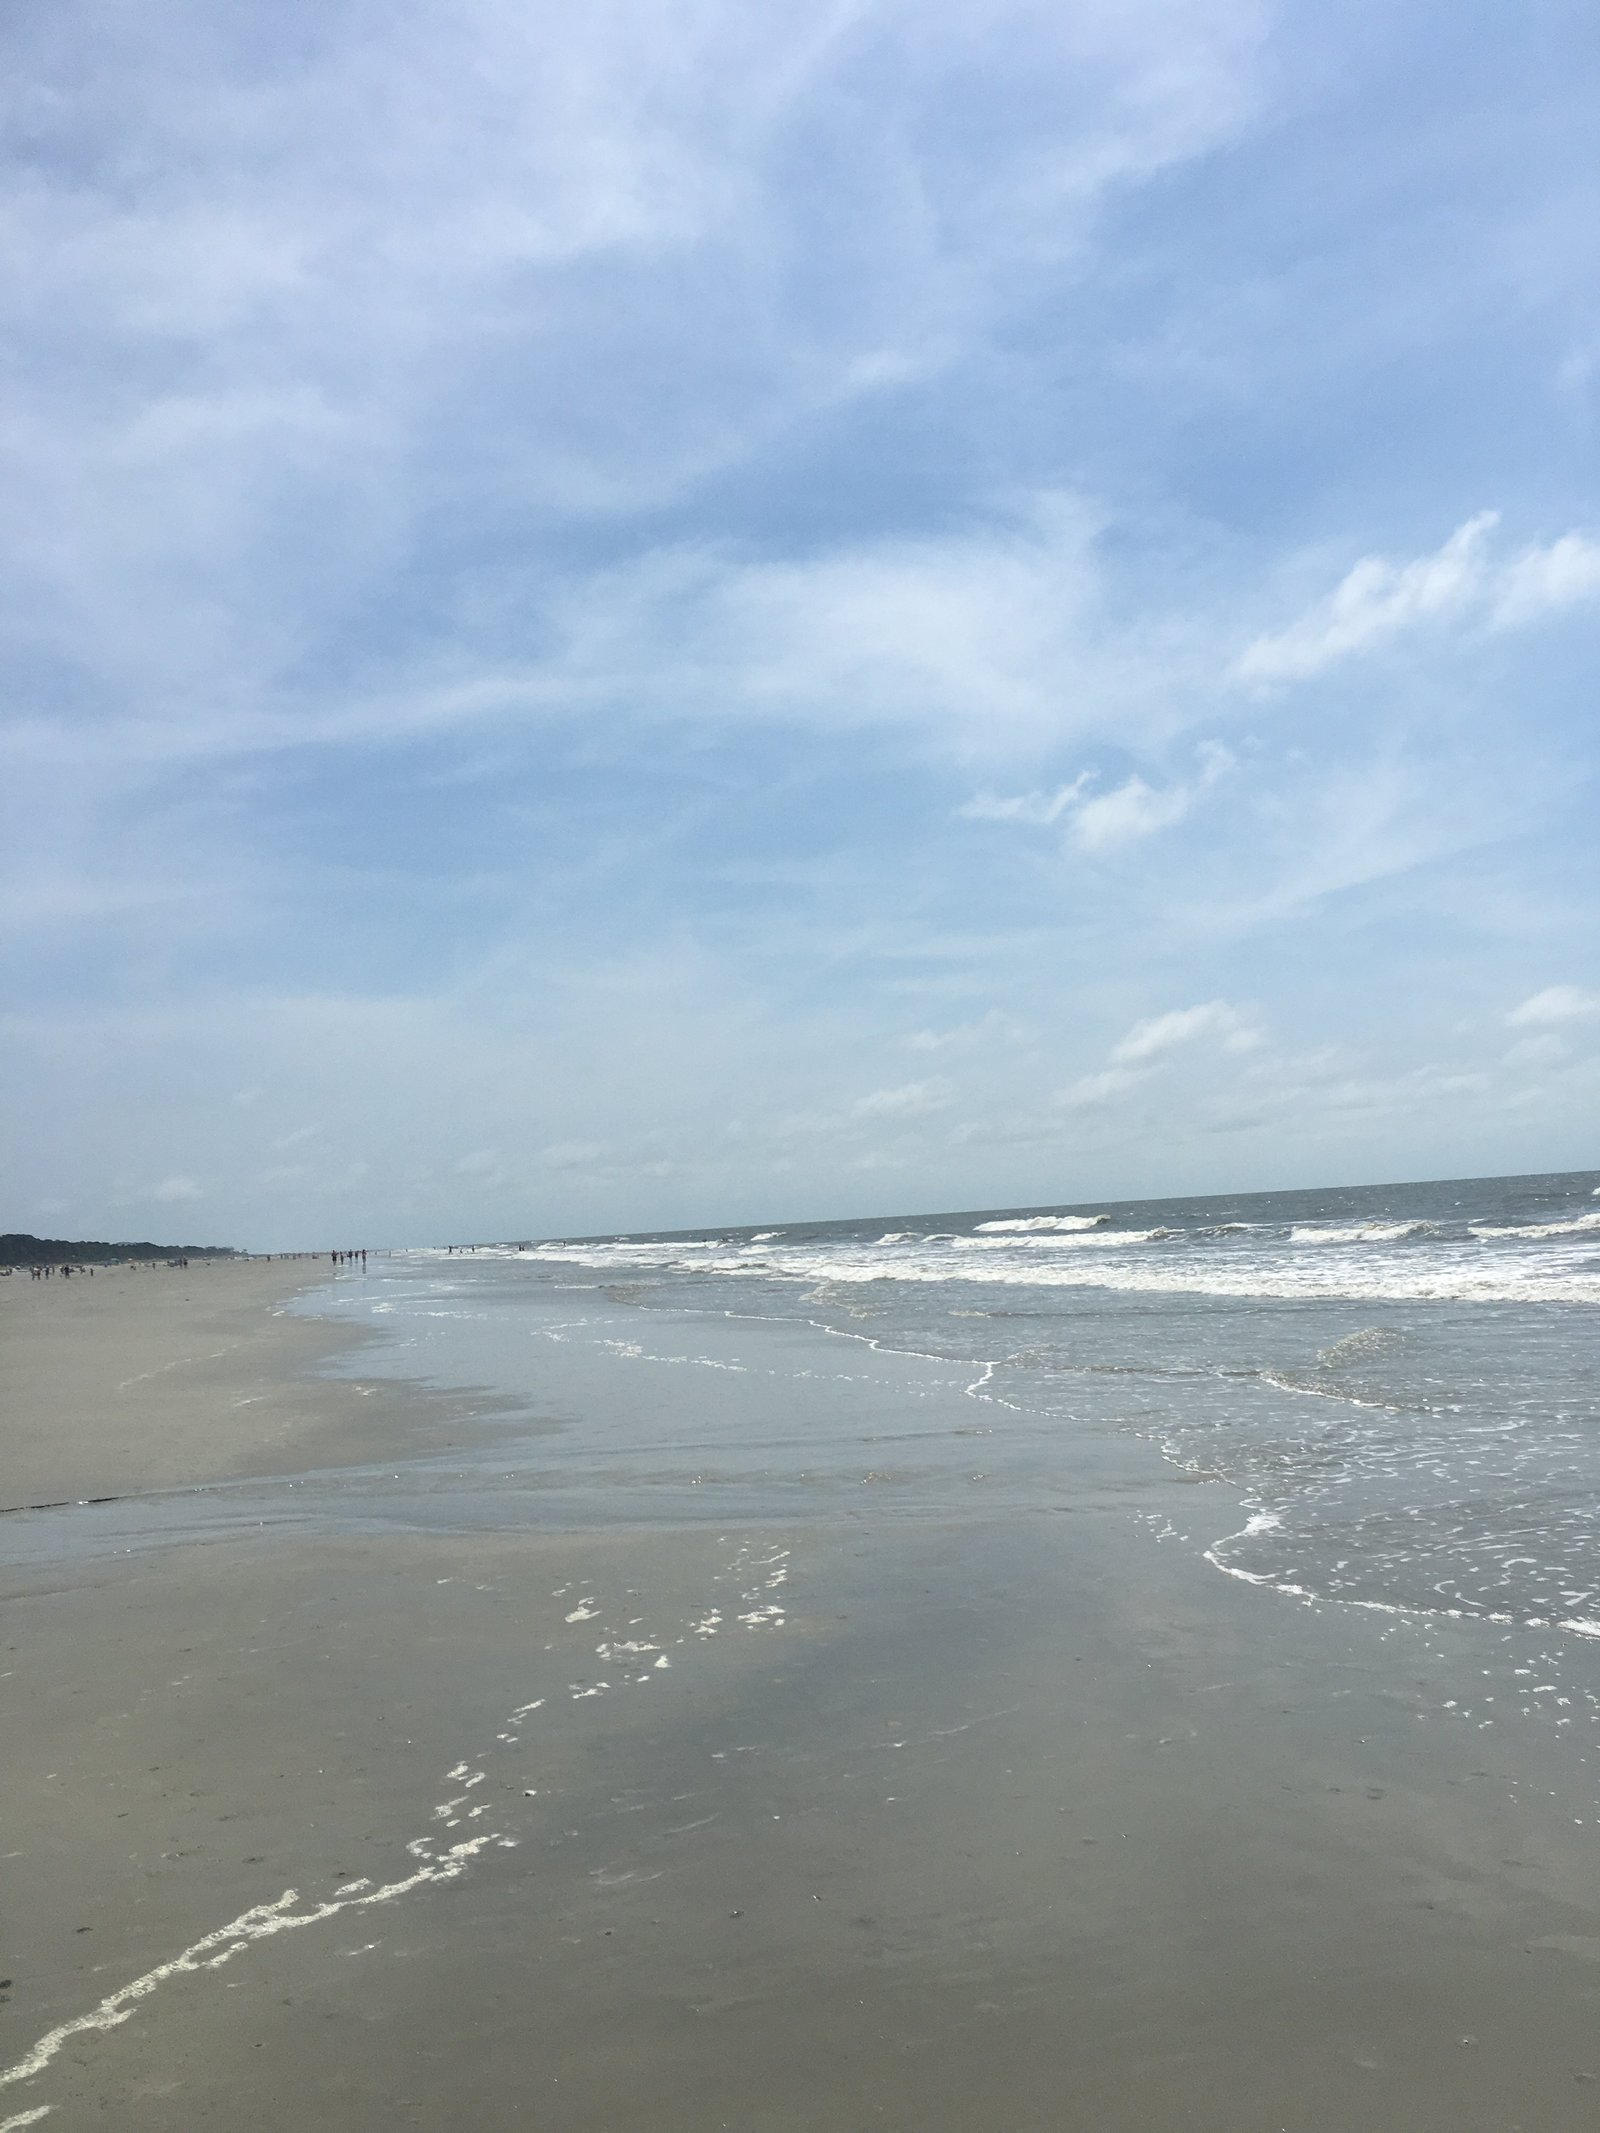 Hilton Head Island beach photo